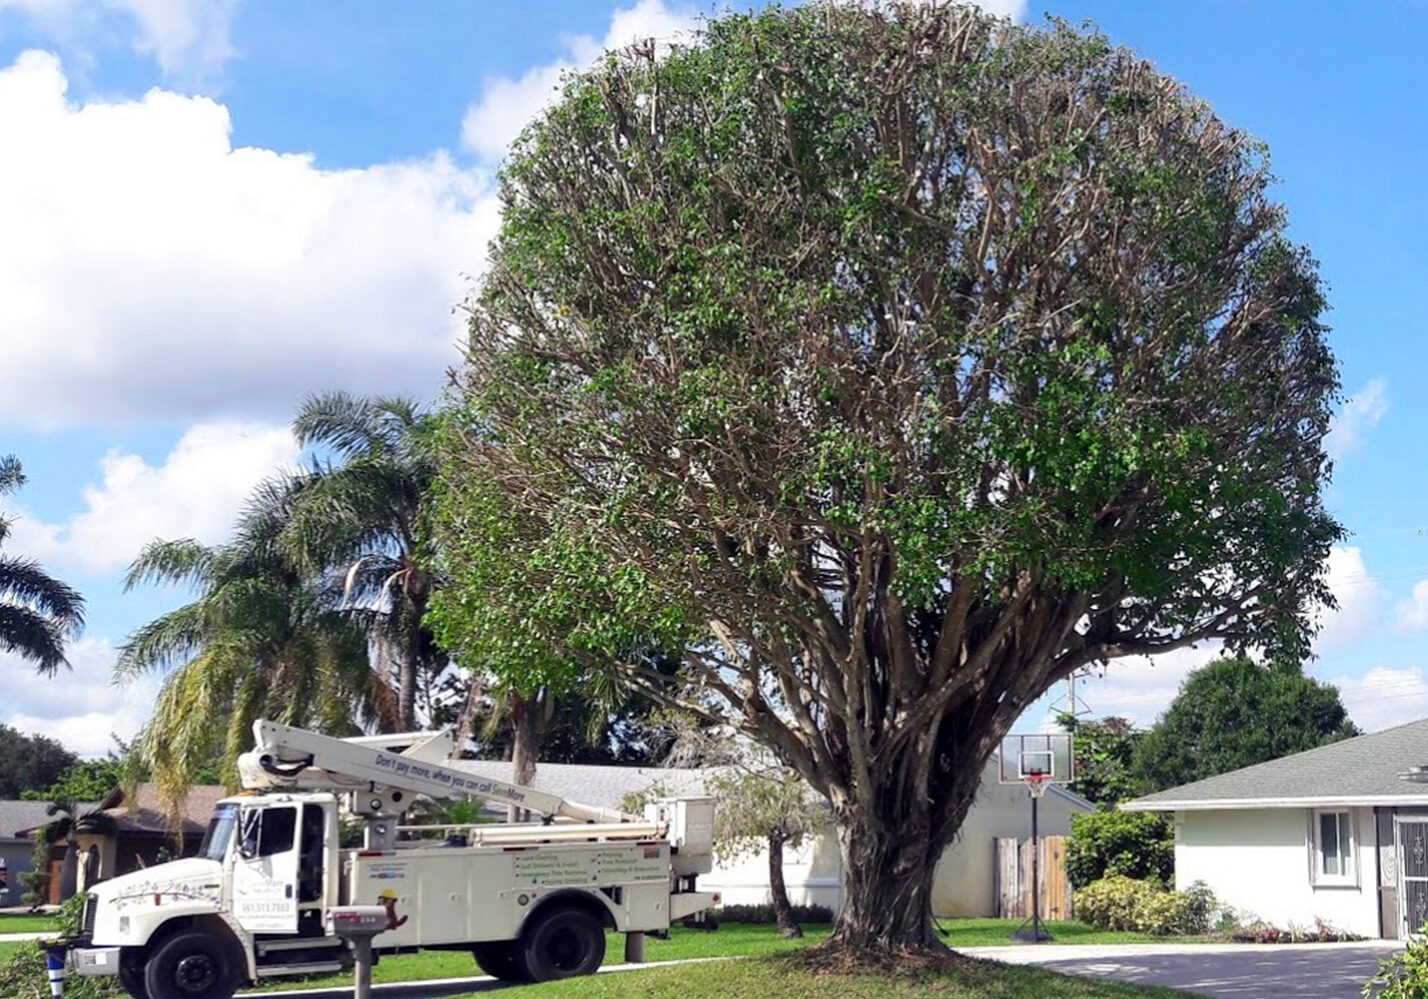 Tree Trimming and Pruning, Reduction in Loxahatchee, Royal Palm Beach, Wellington, FL - SaveMore Tree Service